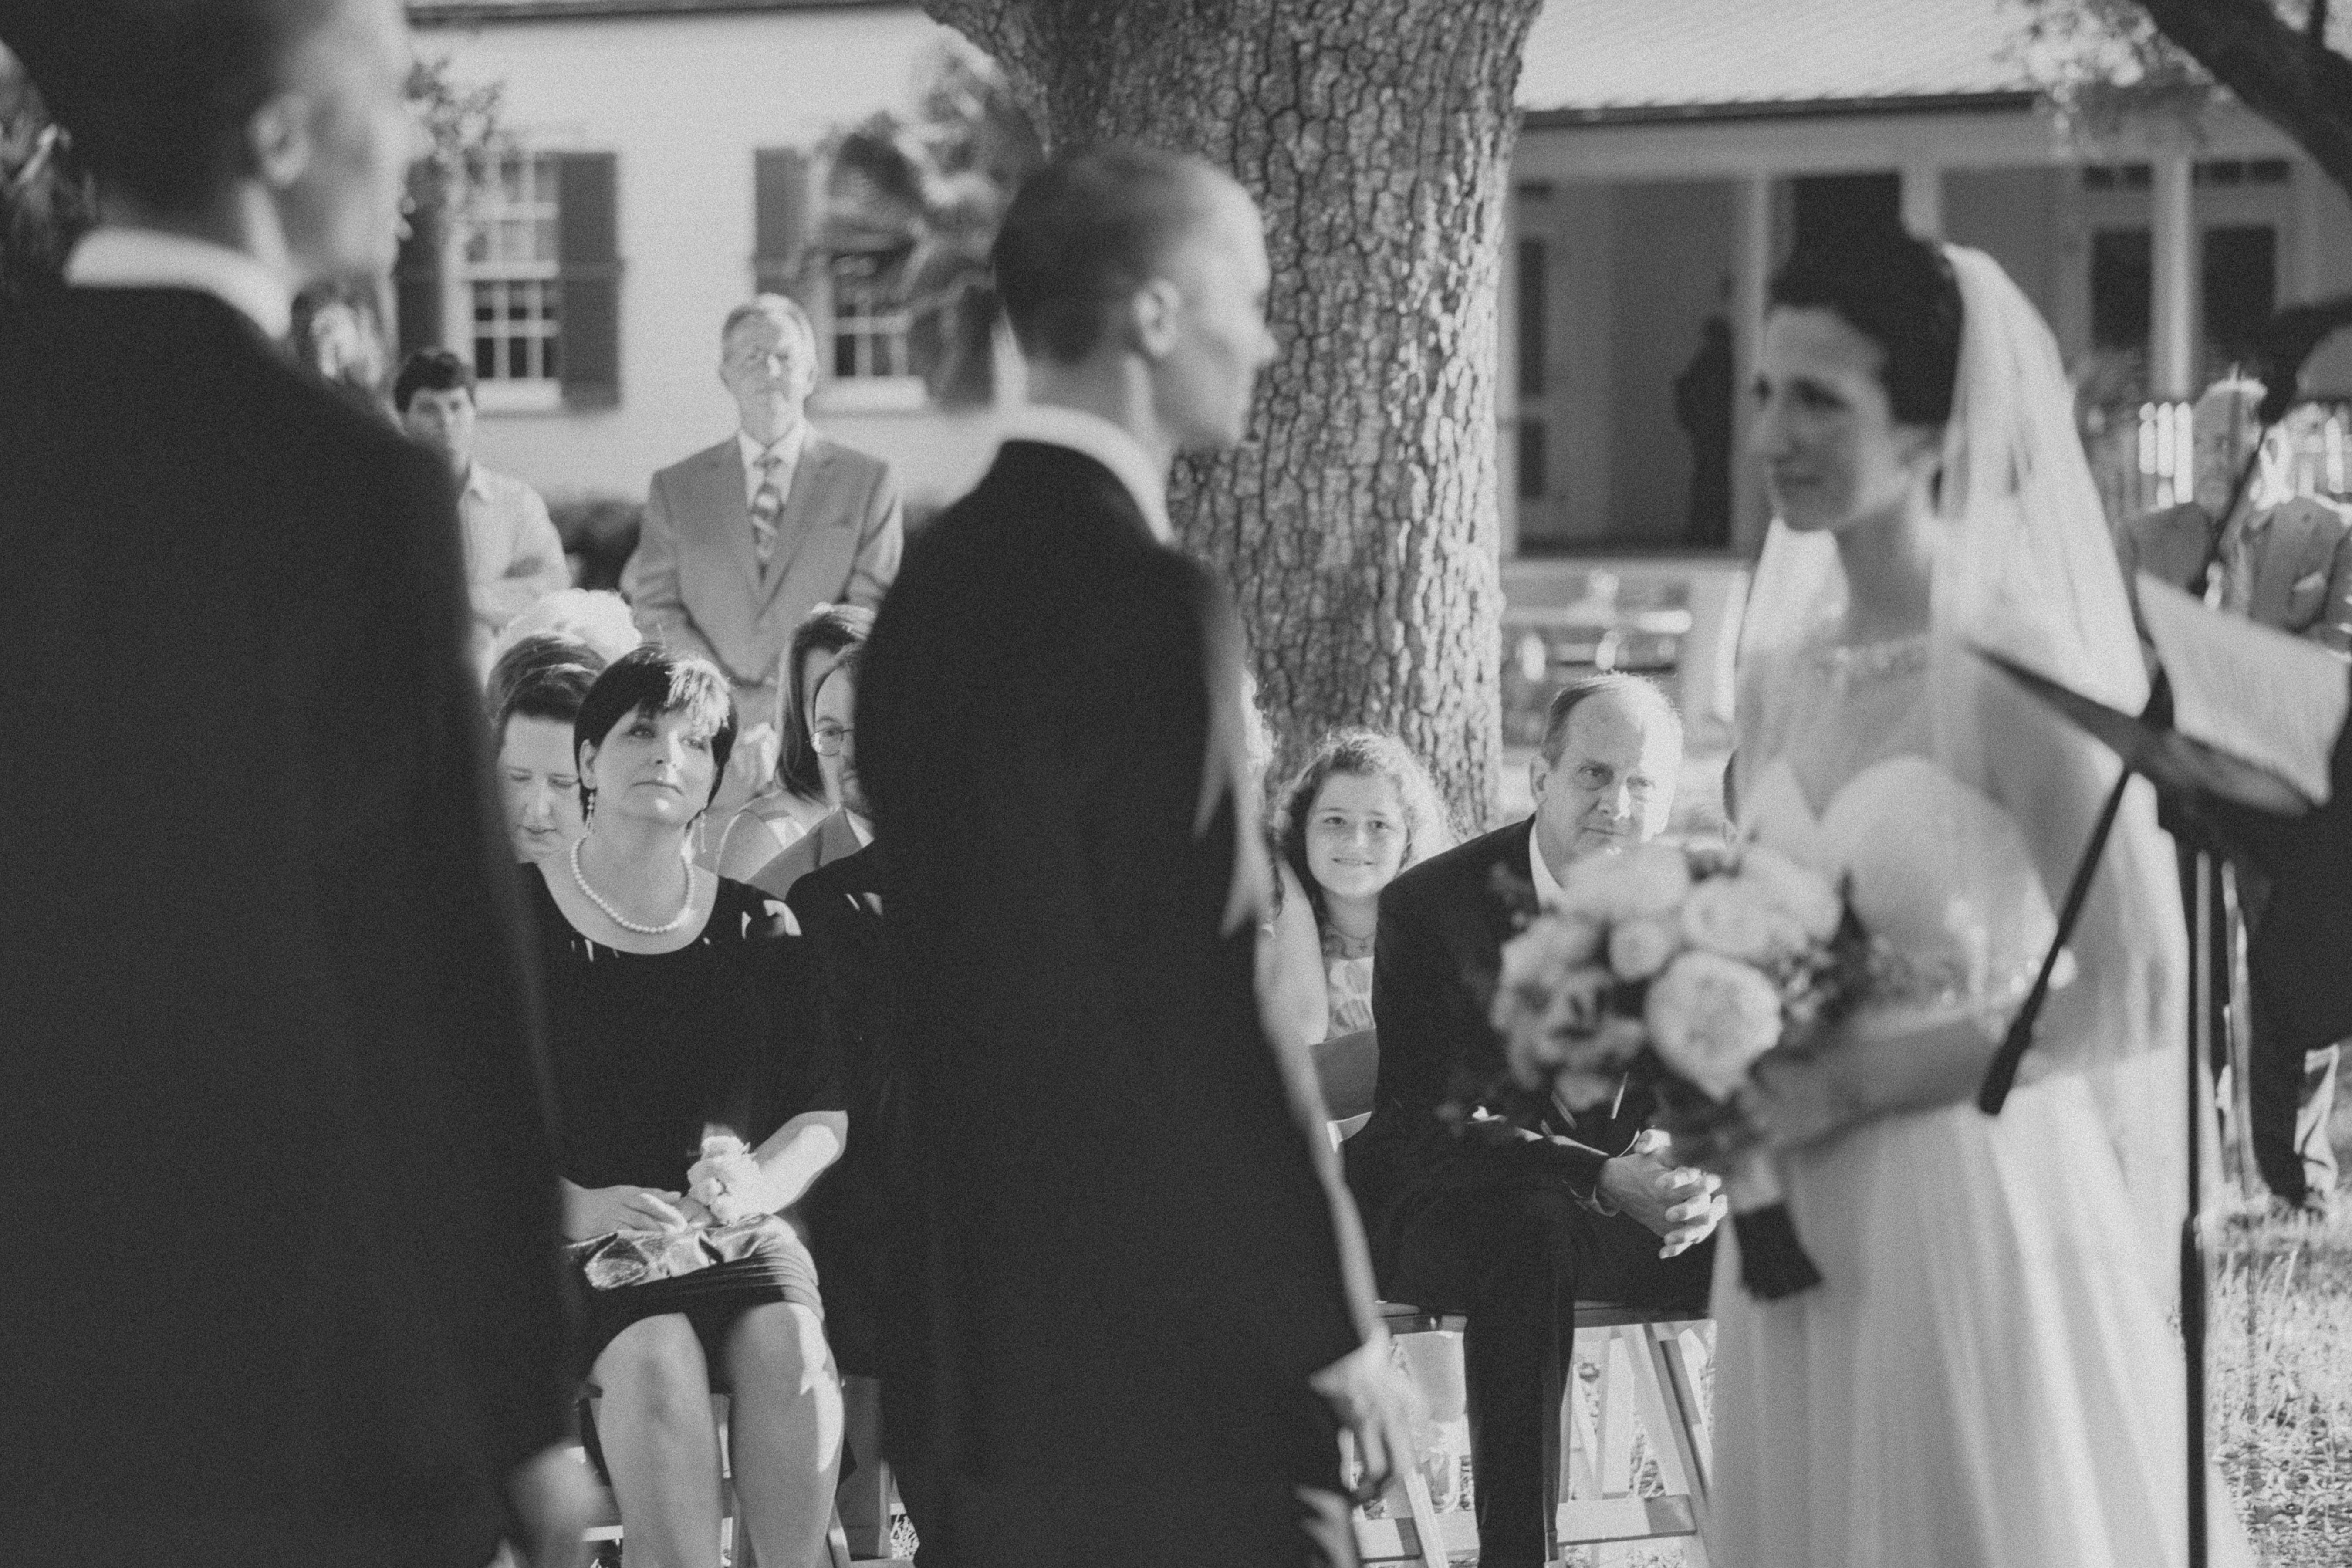 044_audubon_clubhouse_cafe_wedding_new_orleans